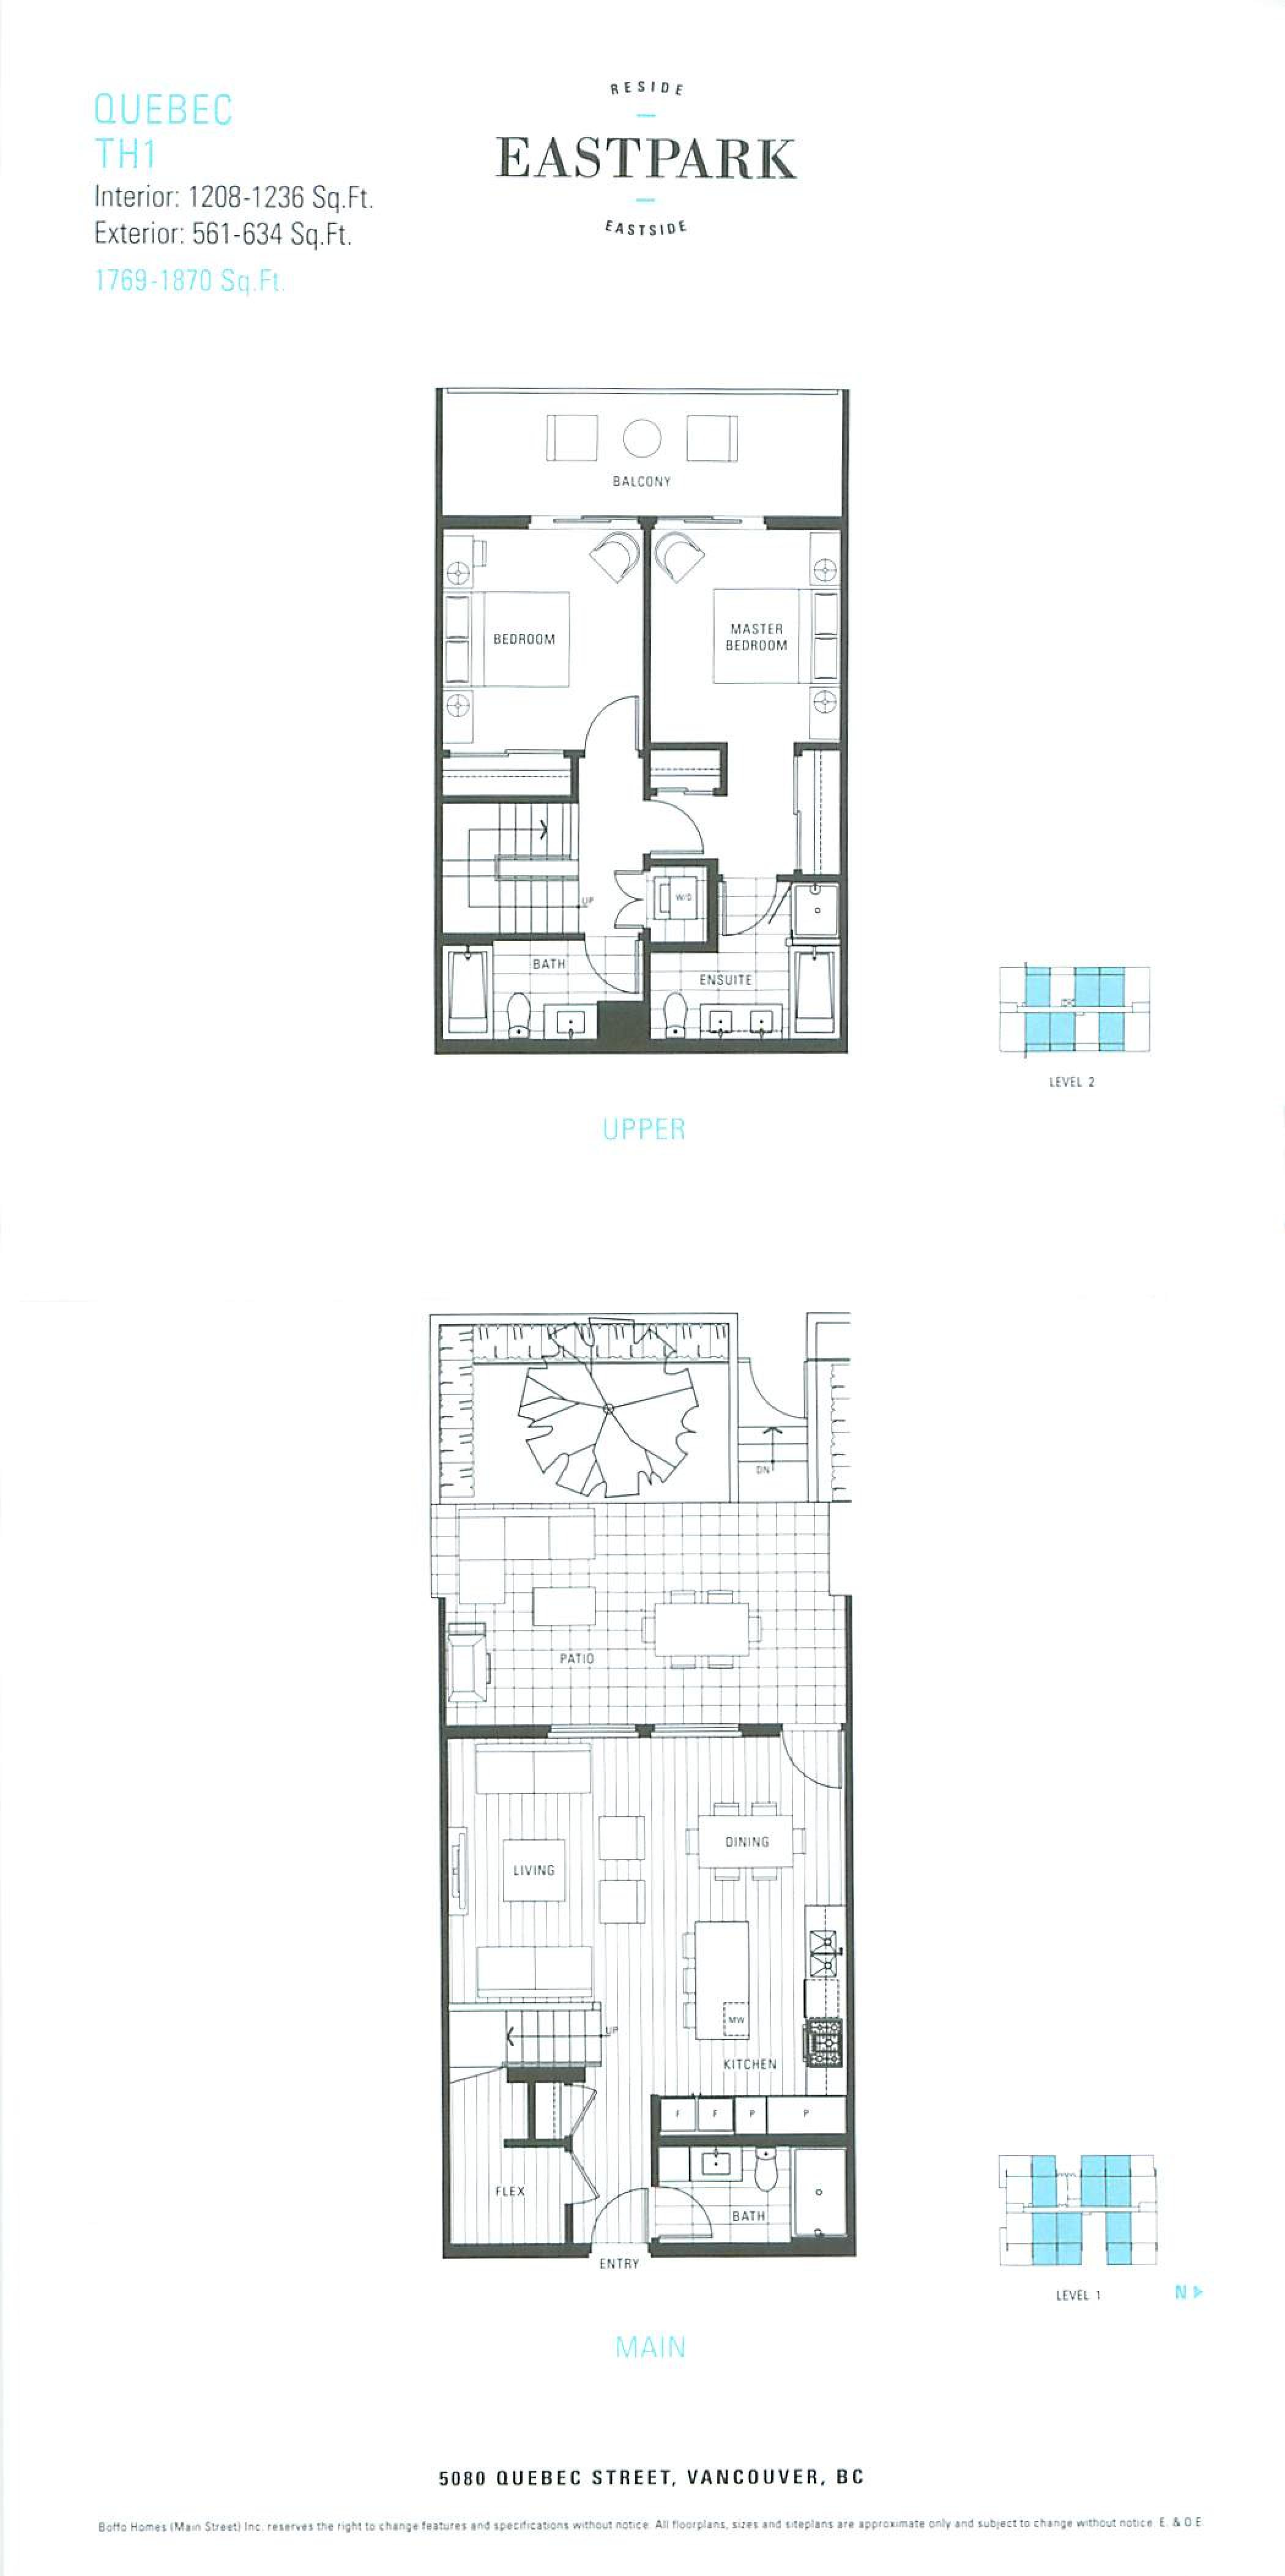 EastPark Quebec Larger Floor Plans Mike Stewart-page-007